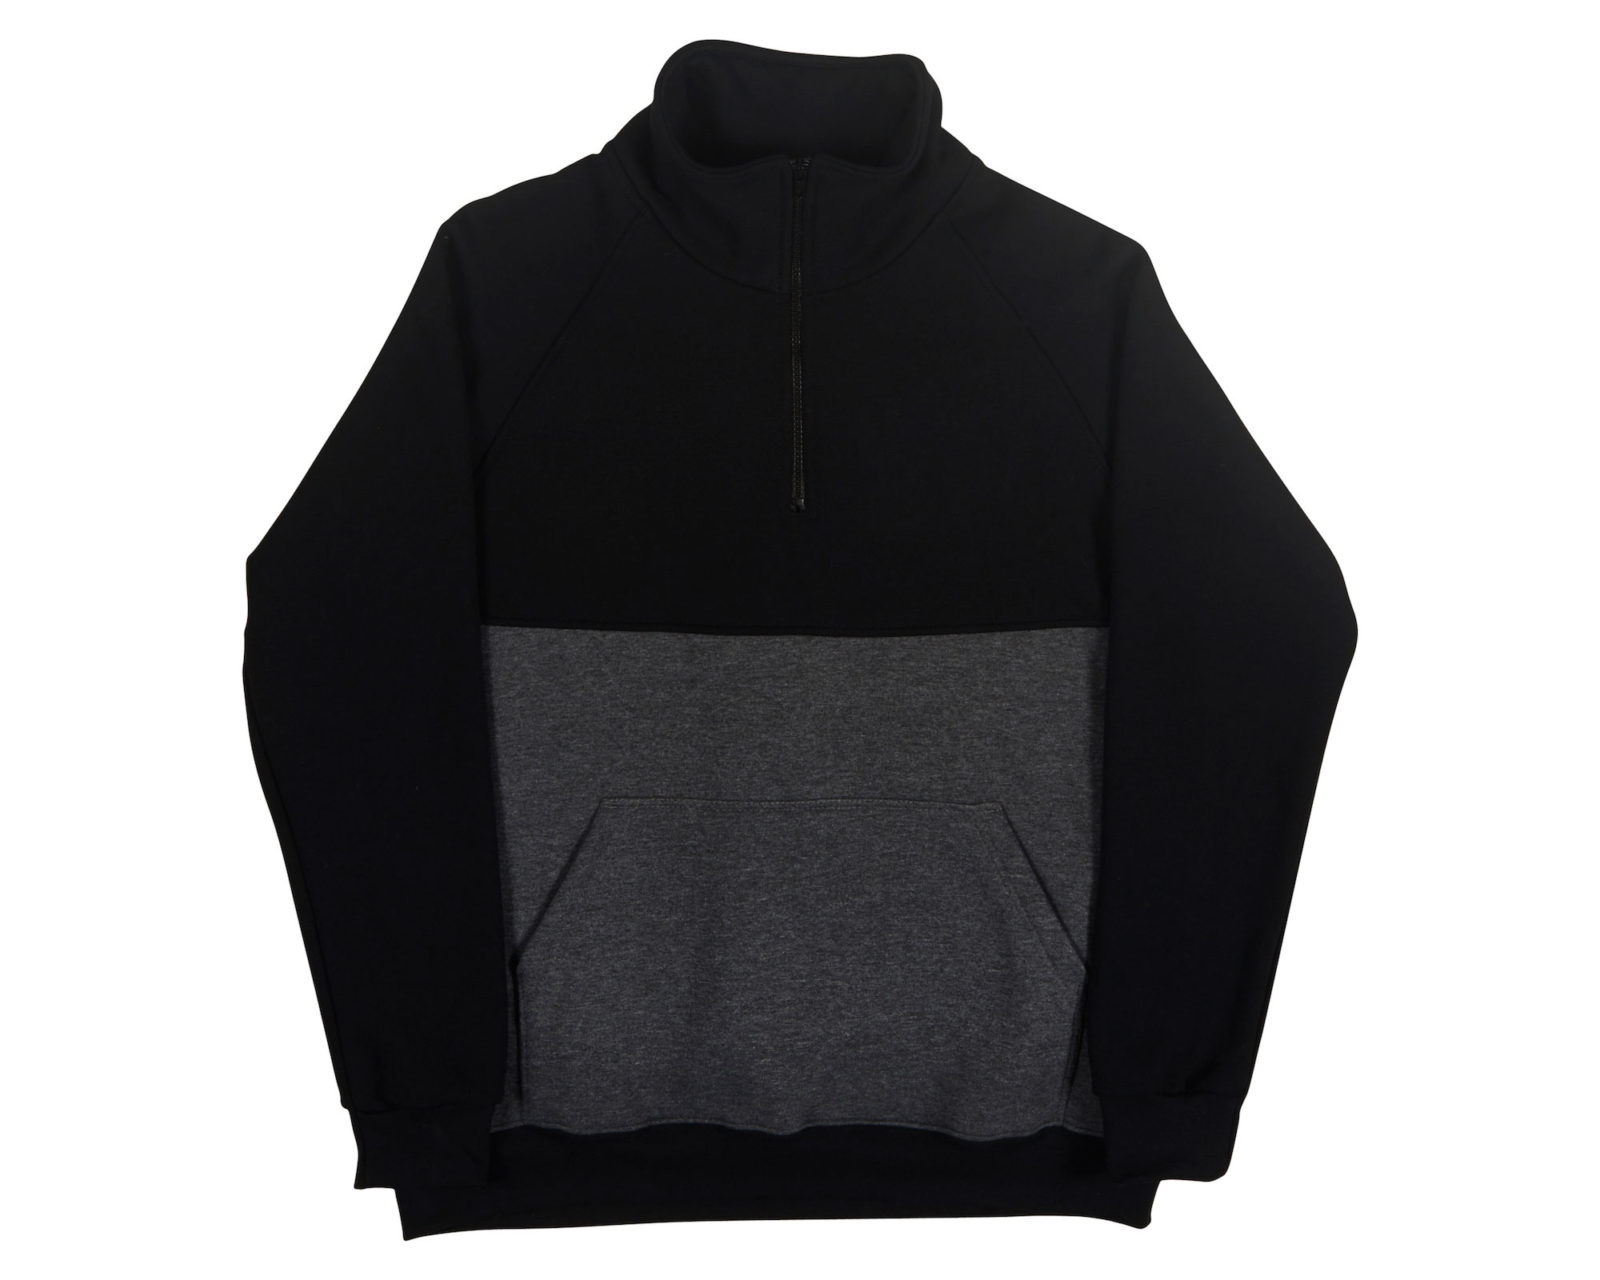 Qualitops Custom Made Mens Two Tone Windcheater Polycotton Australian made clothing